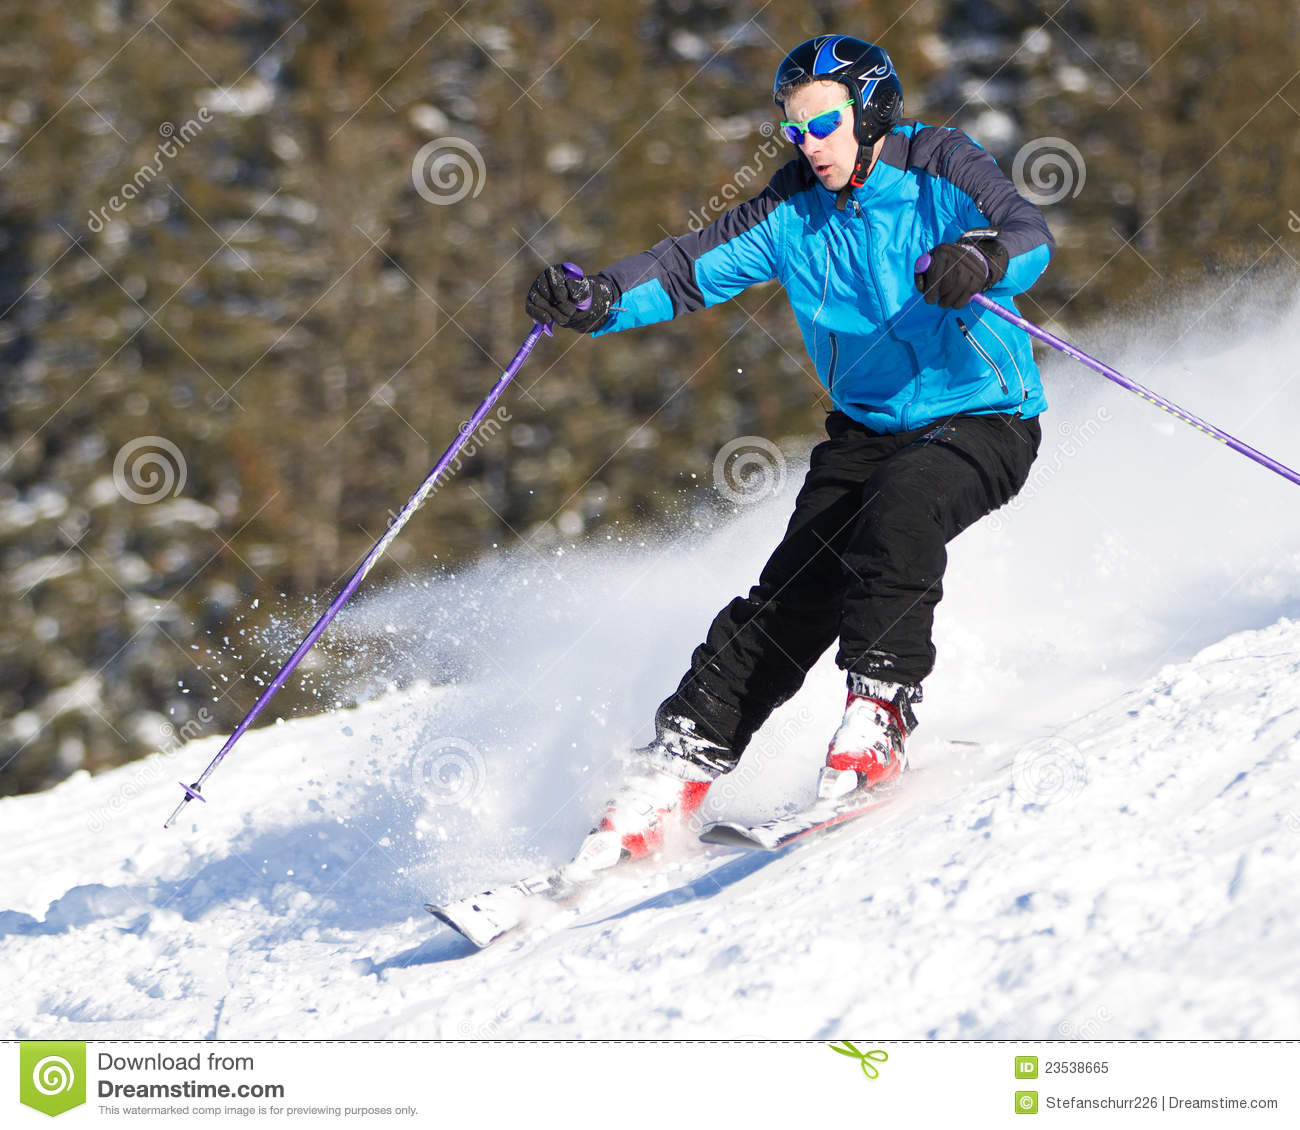 Carving skier in powder snow with spray royalty free stock